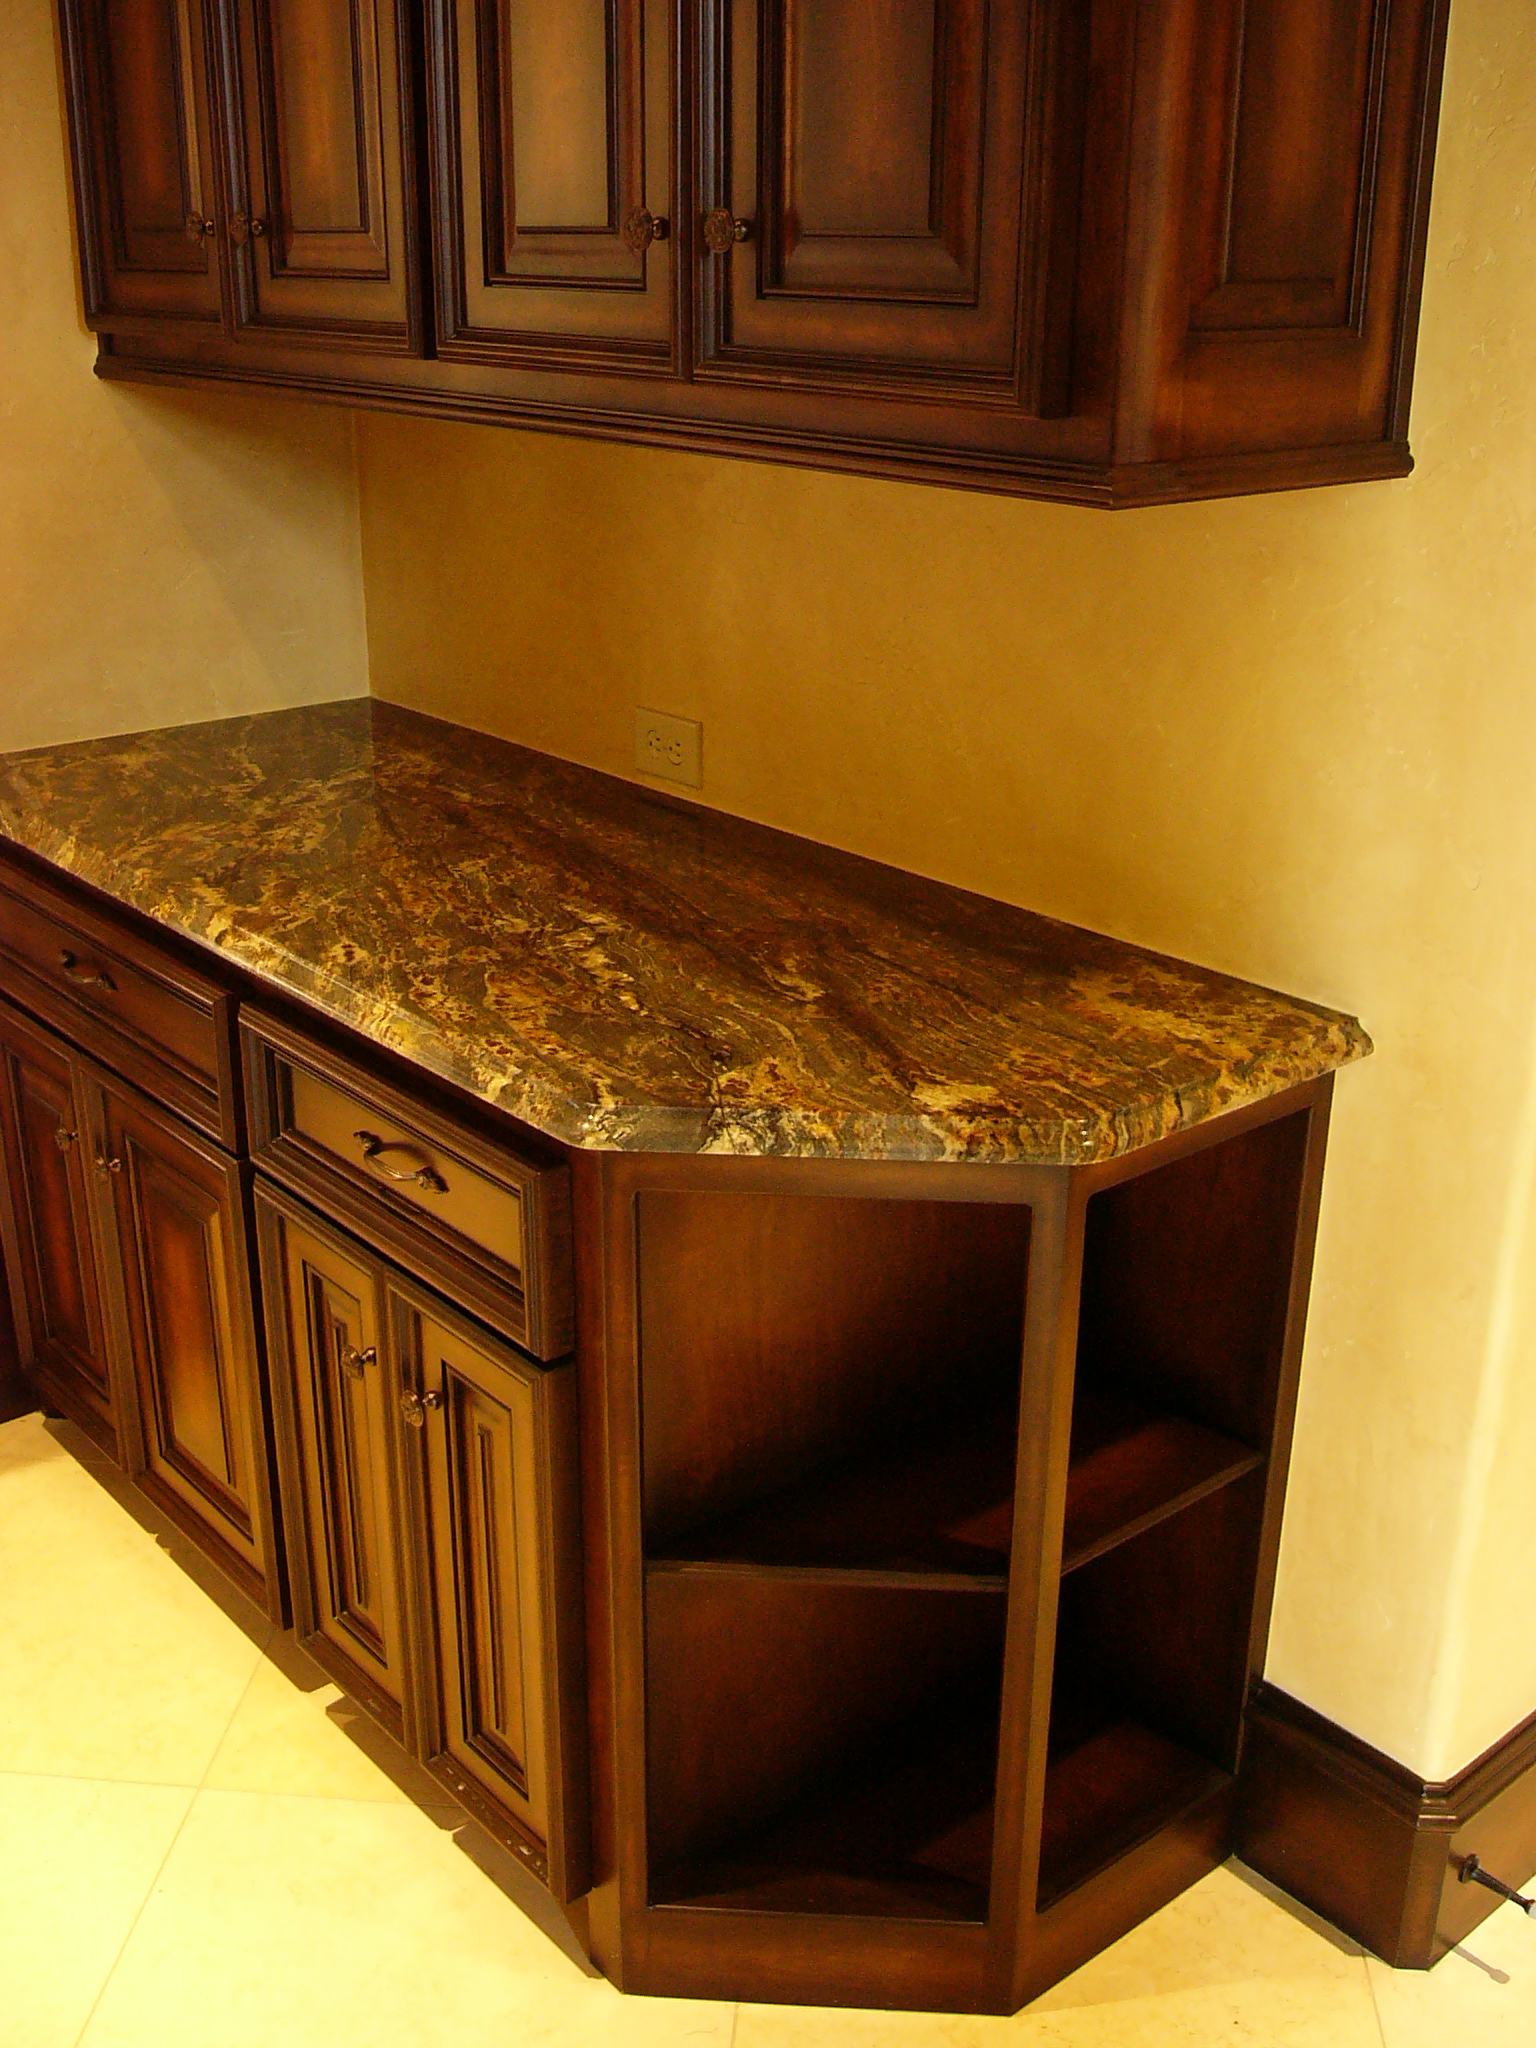 affordable ice granite countertops custom cabinets countertop with and sink farm a white